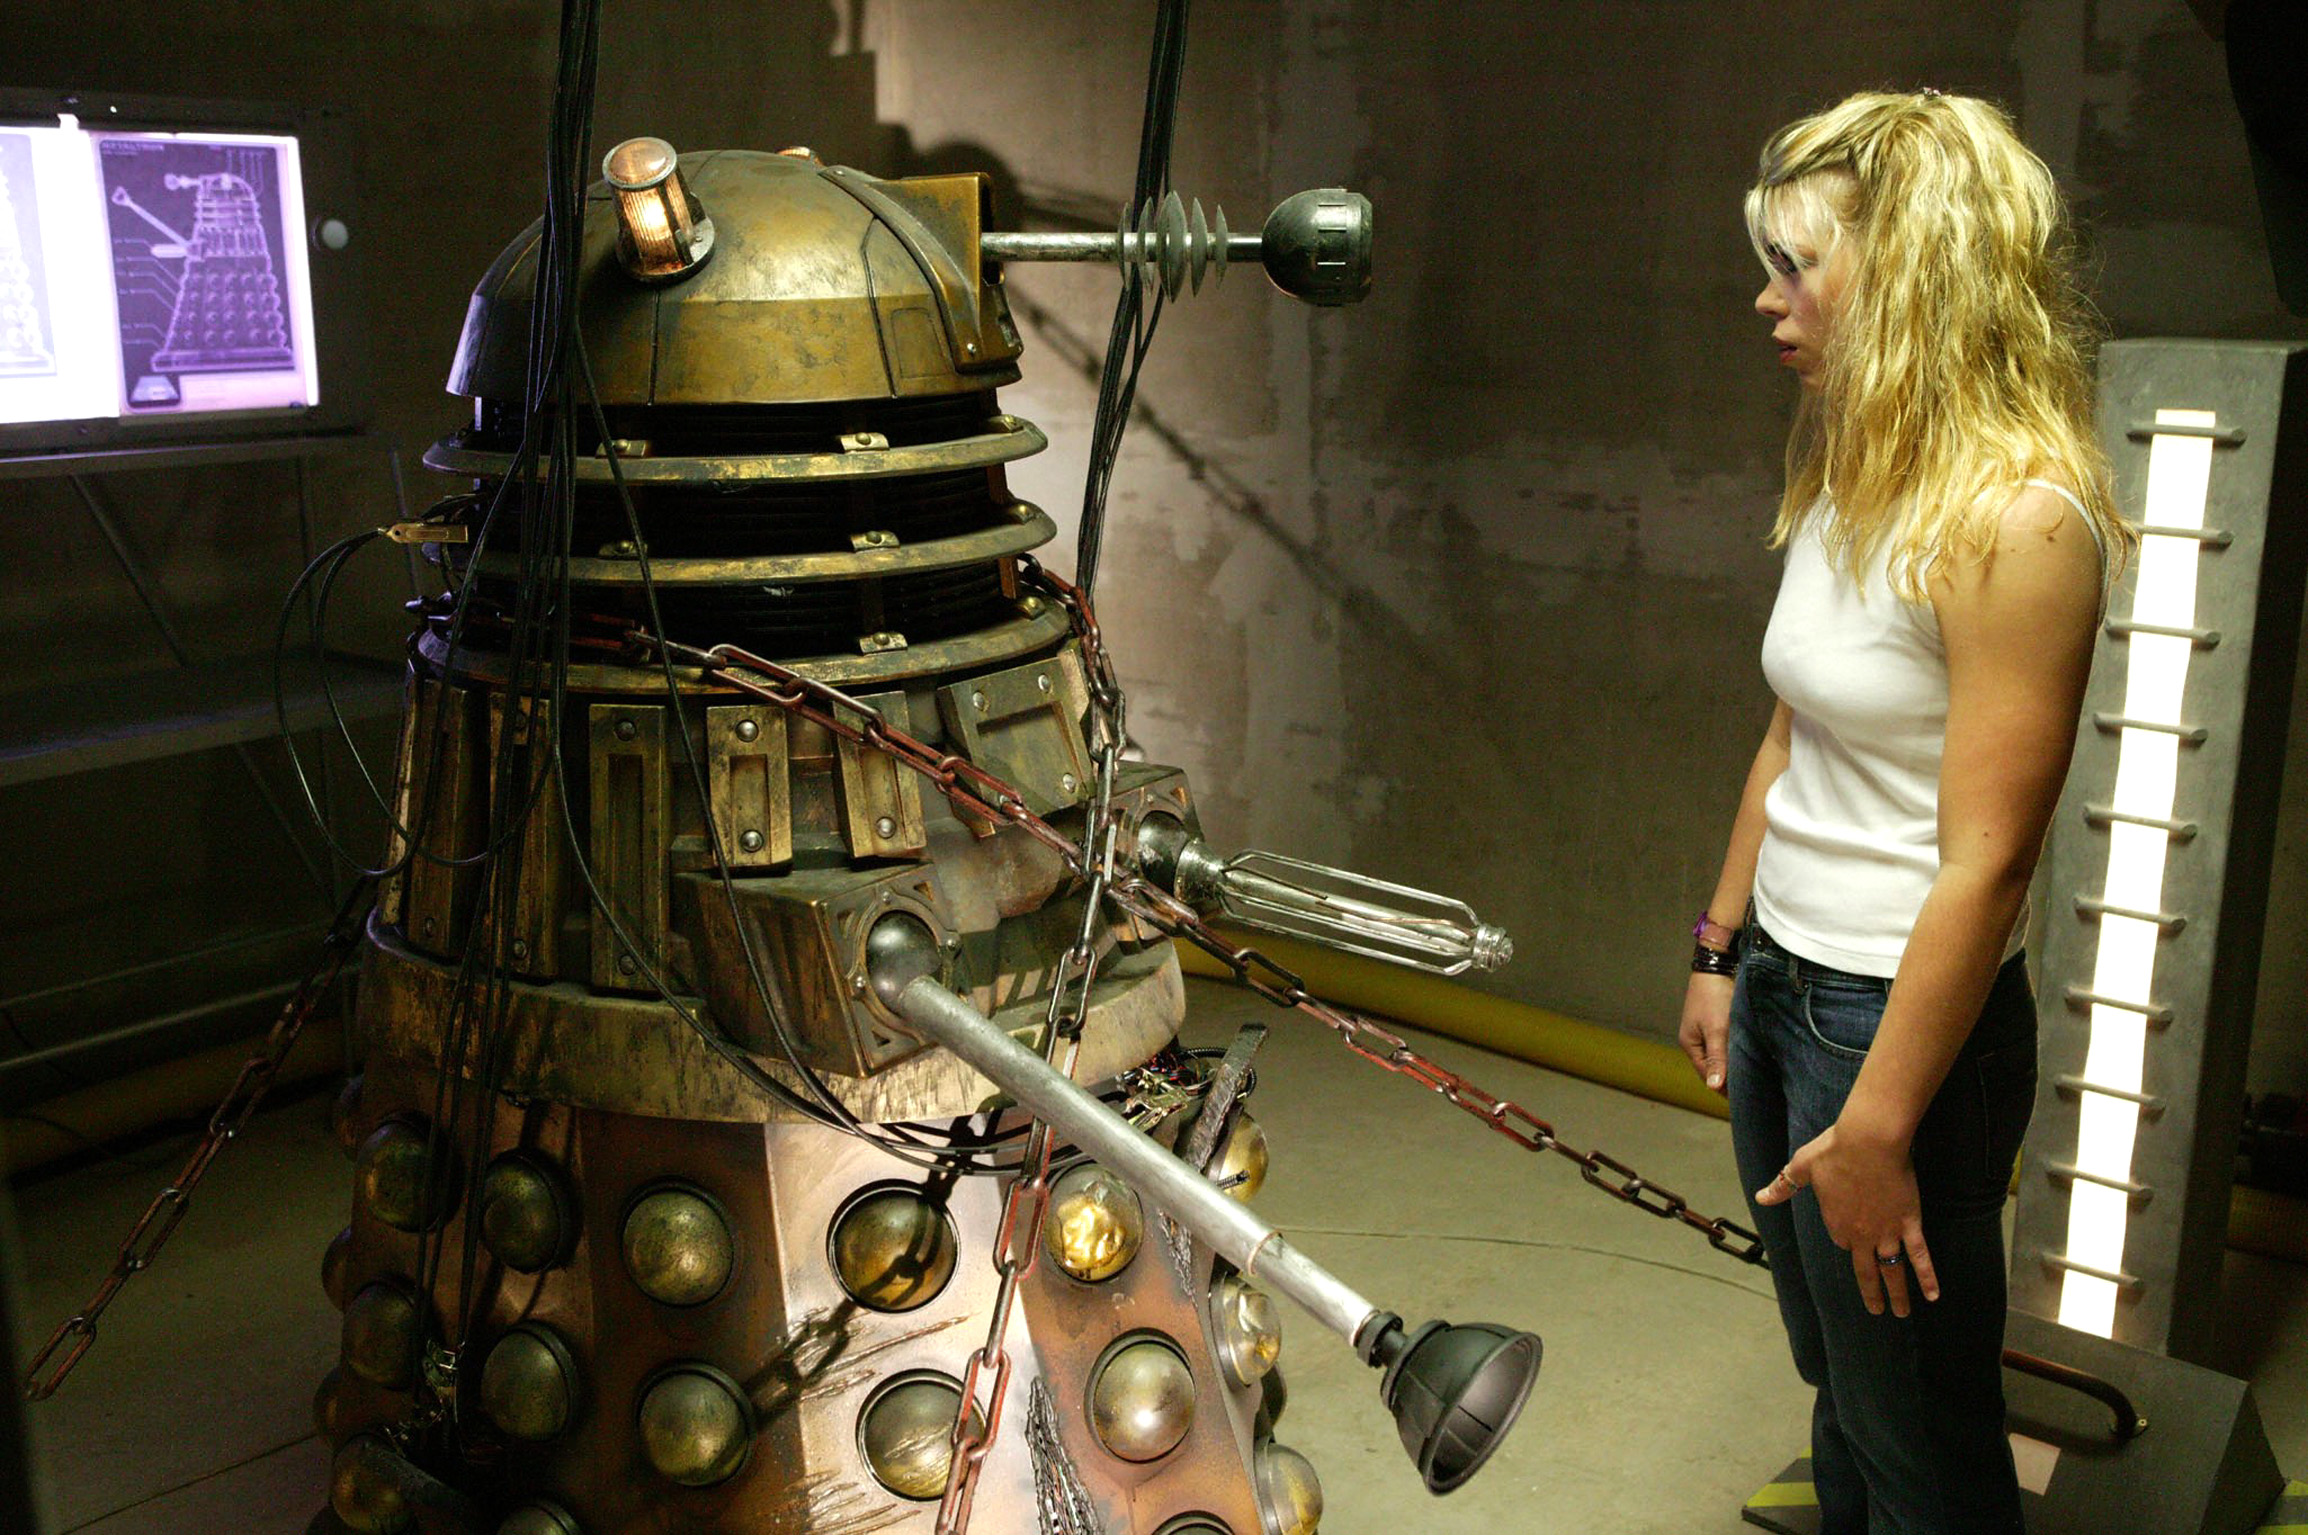 Doctor who tv series 1 story 161 dalek episode 6 dvdbash - Doctor who dalek pics ...